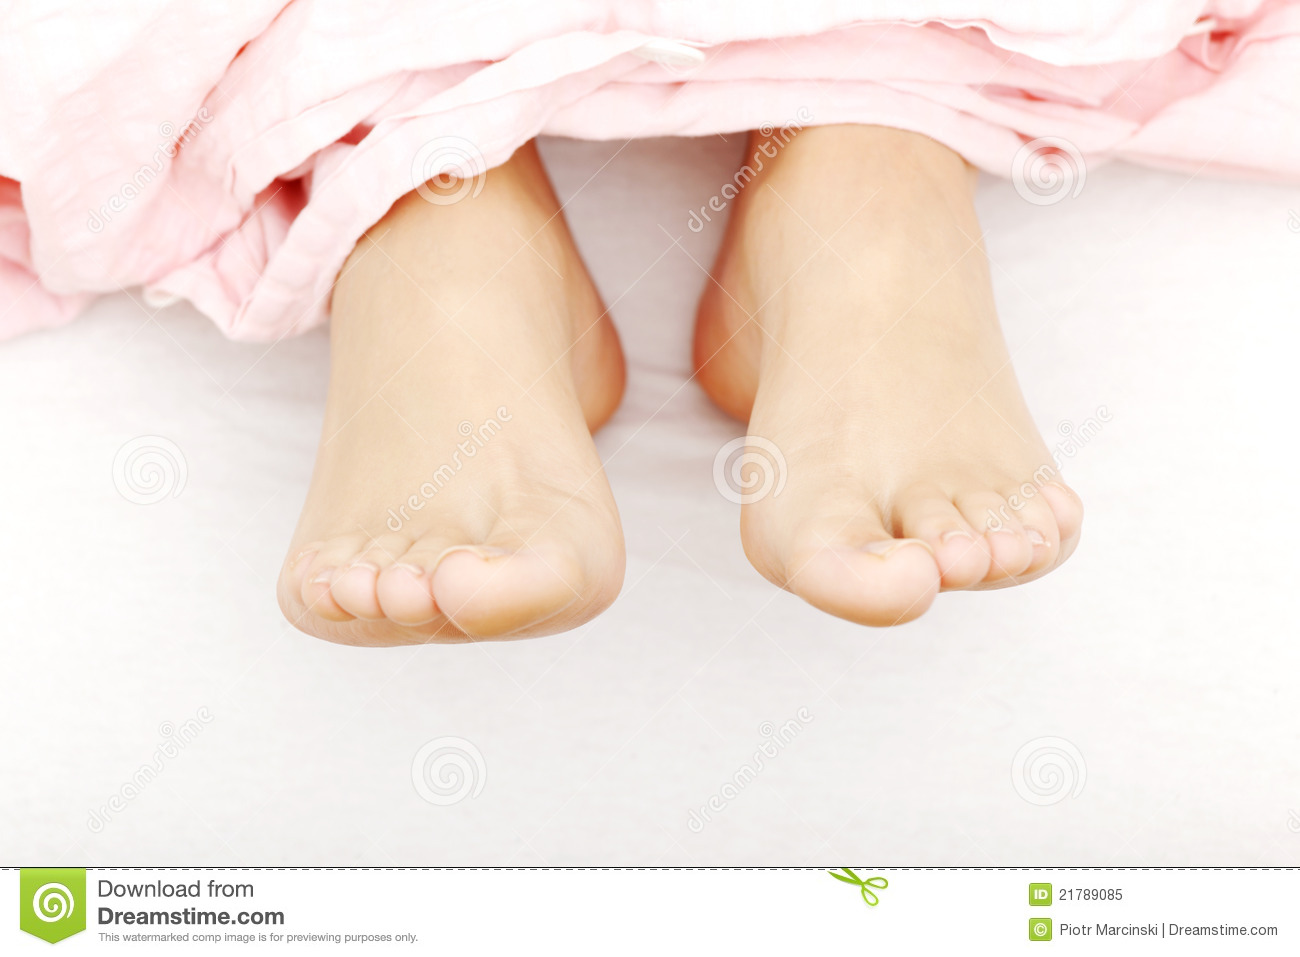 Beautiful Feet In Bed Royalty Free Stock Photo - Image: 21789085